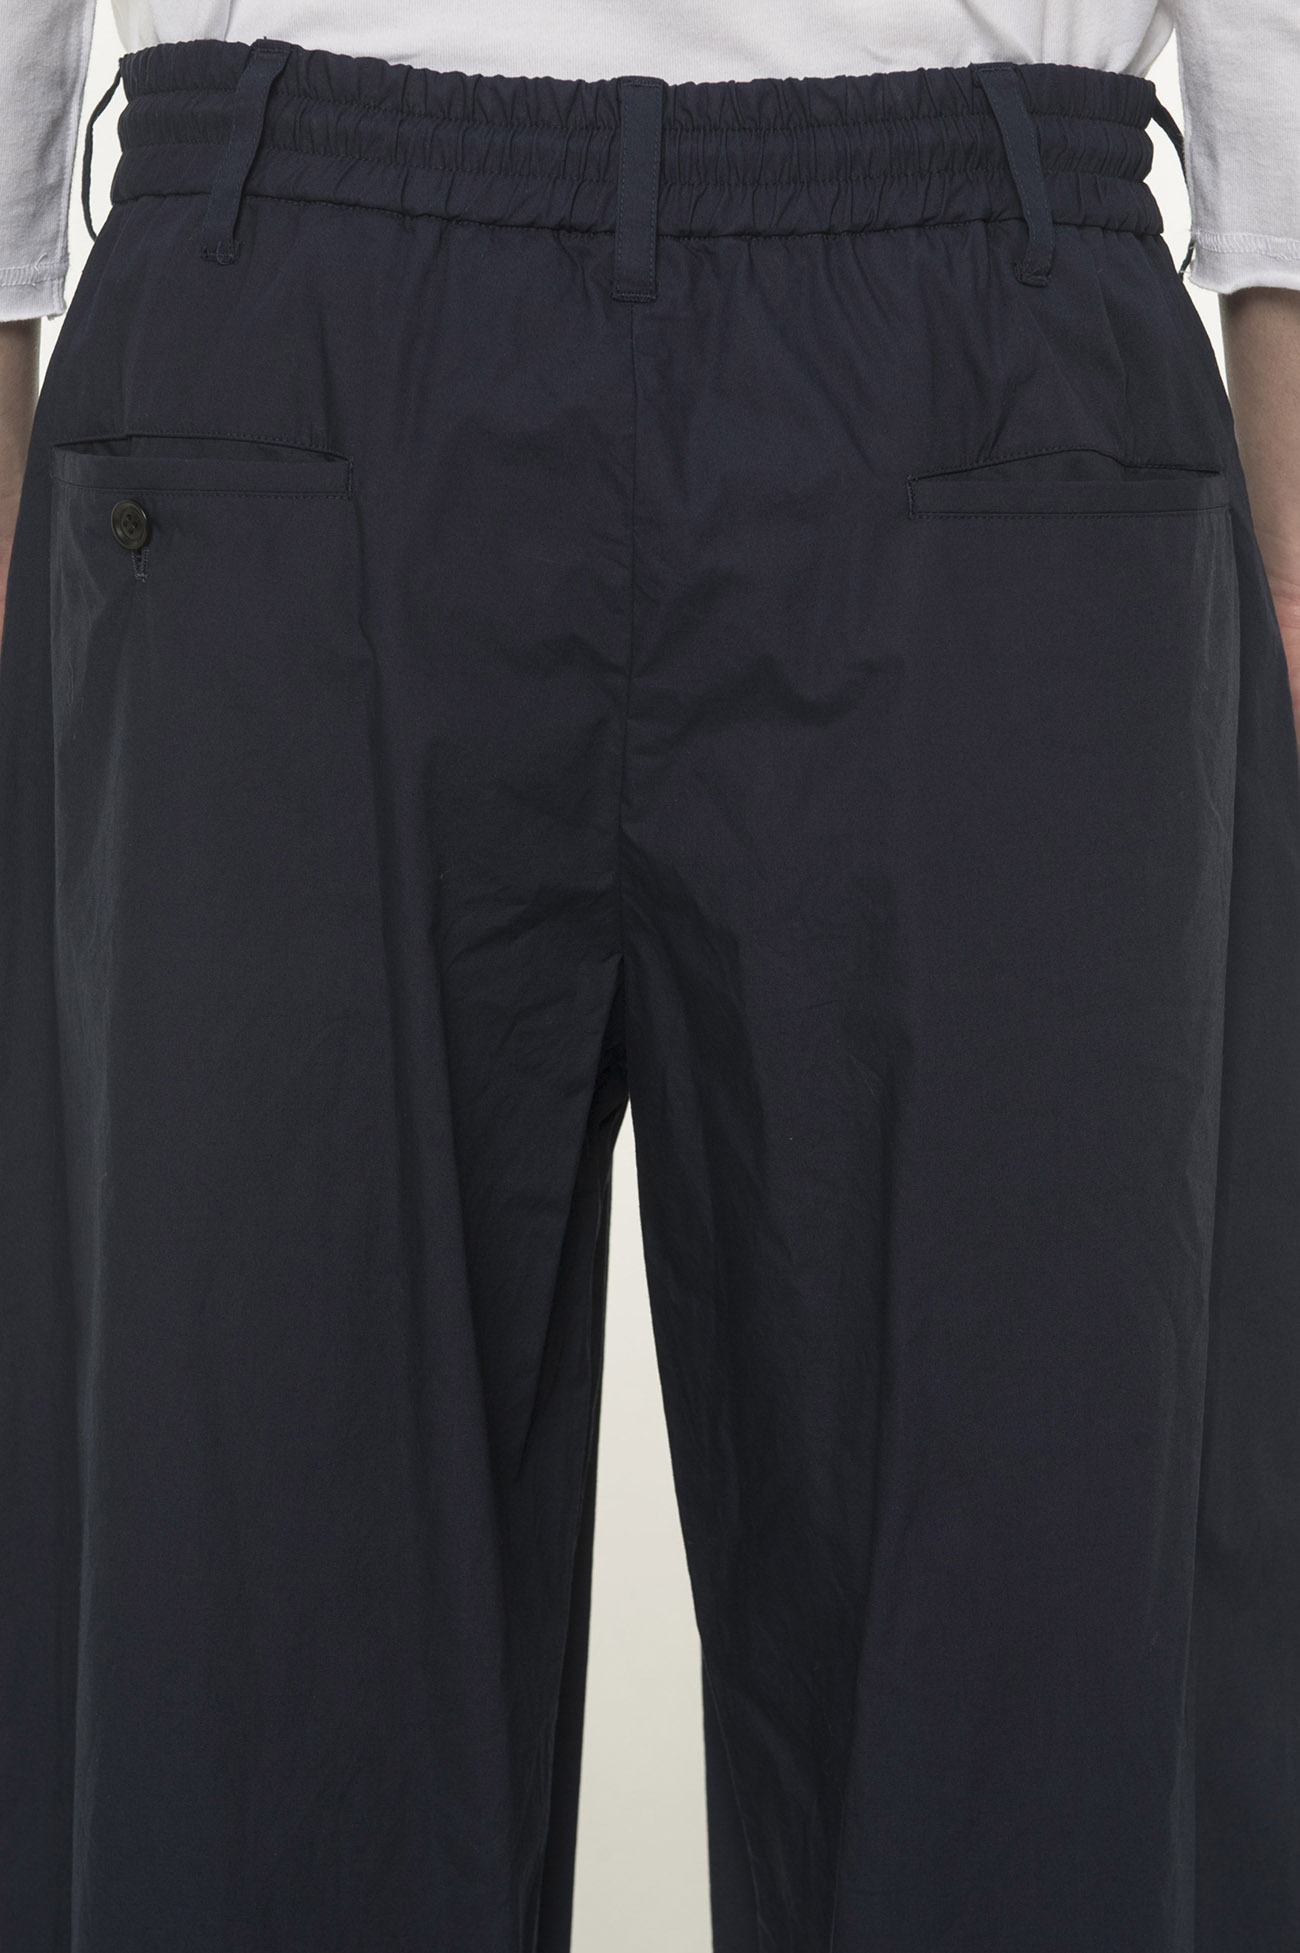 Cotton Type Lighter Center Wide Tack Pants